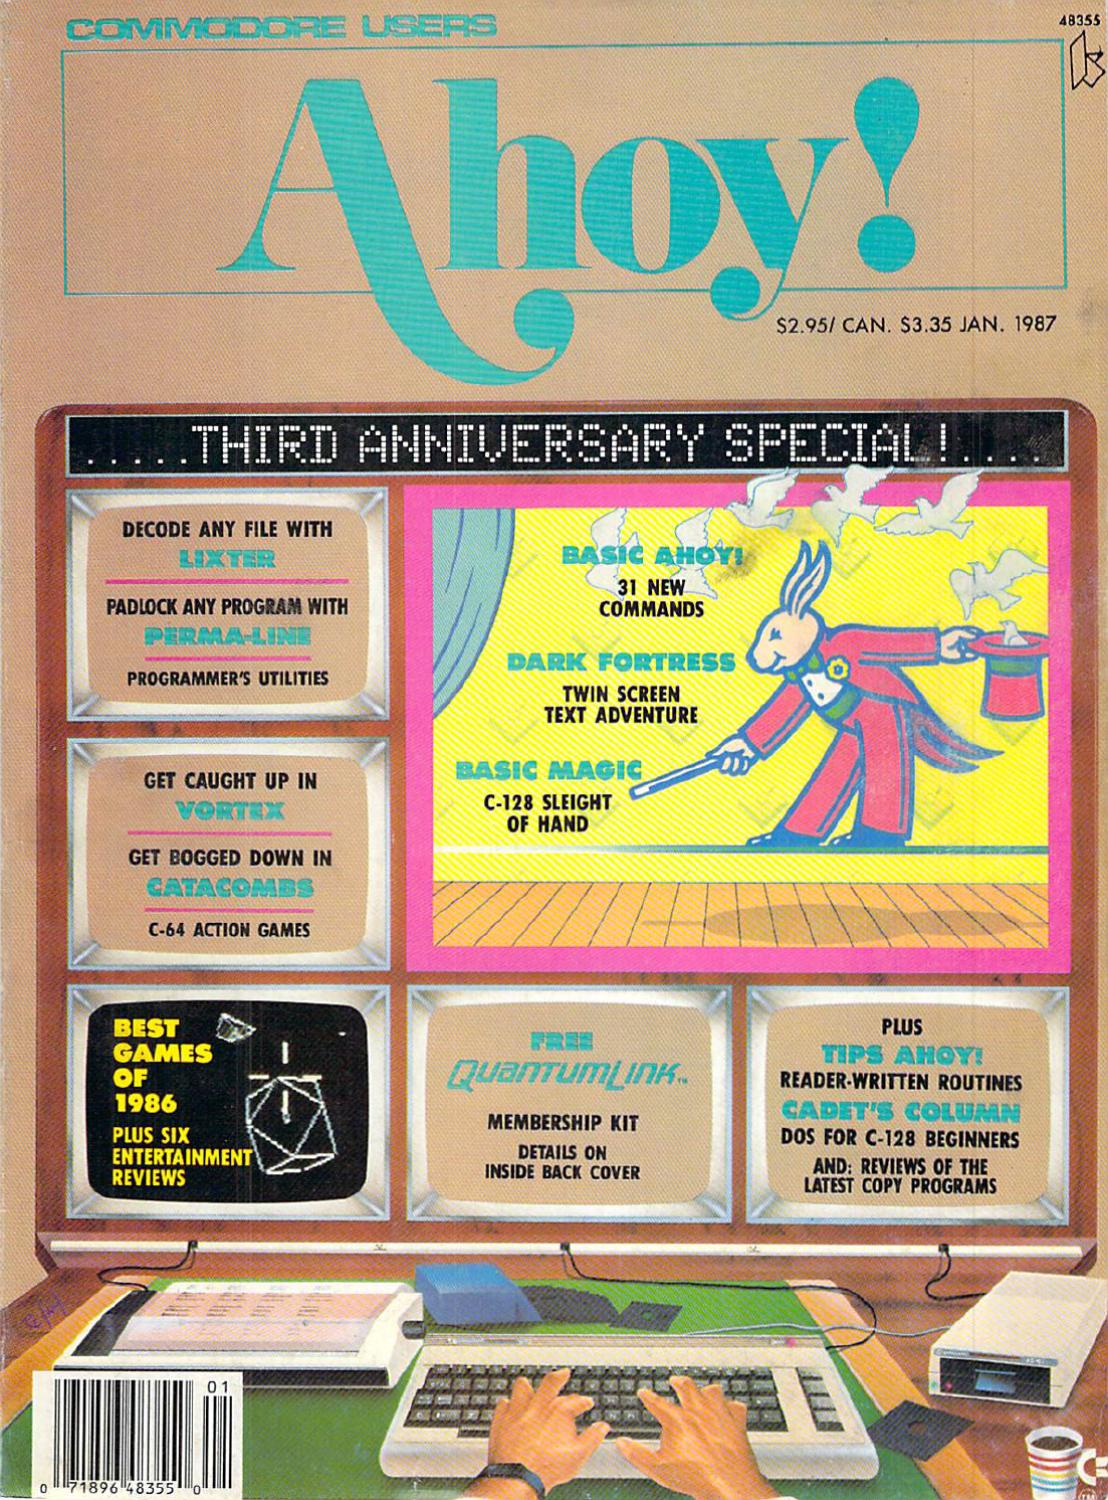 Ahoy Issue 37 1987 Jan By Zetmoon Issuu S10 25l Wiring Forum